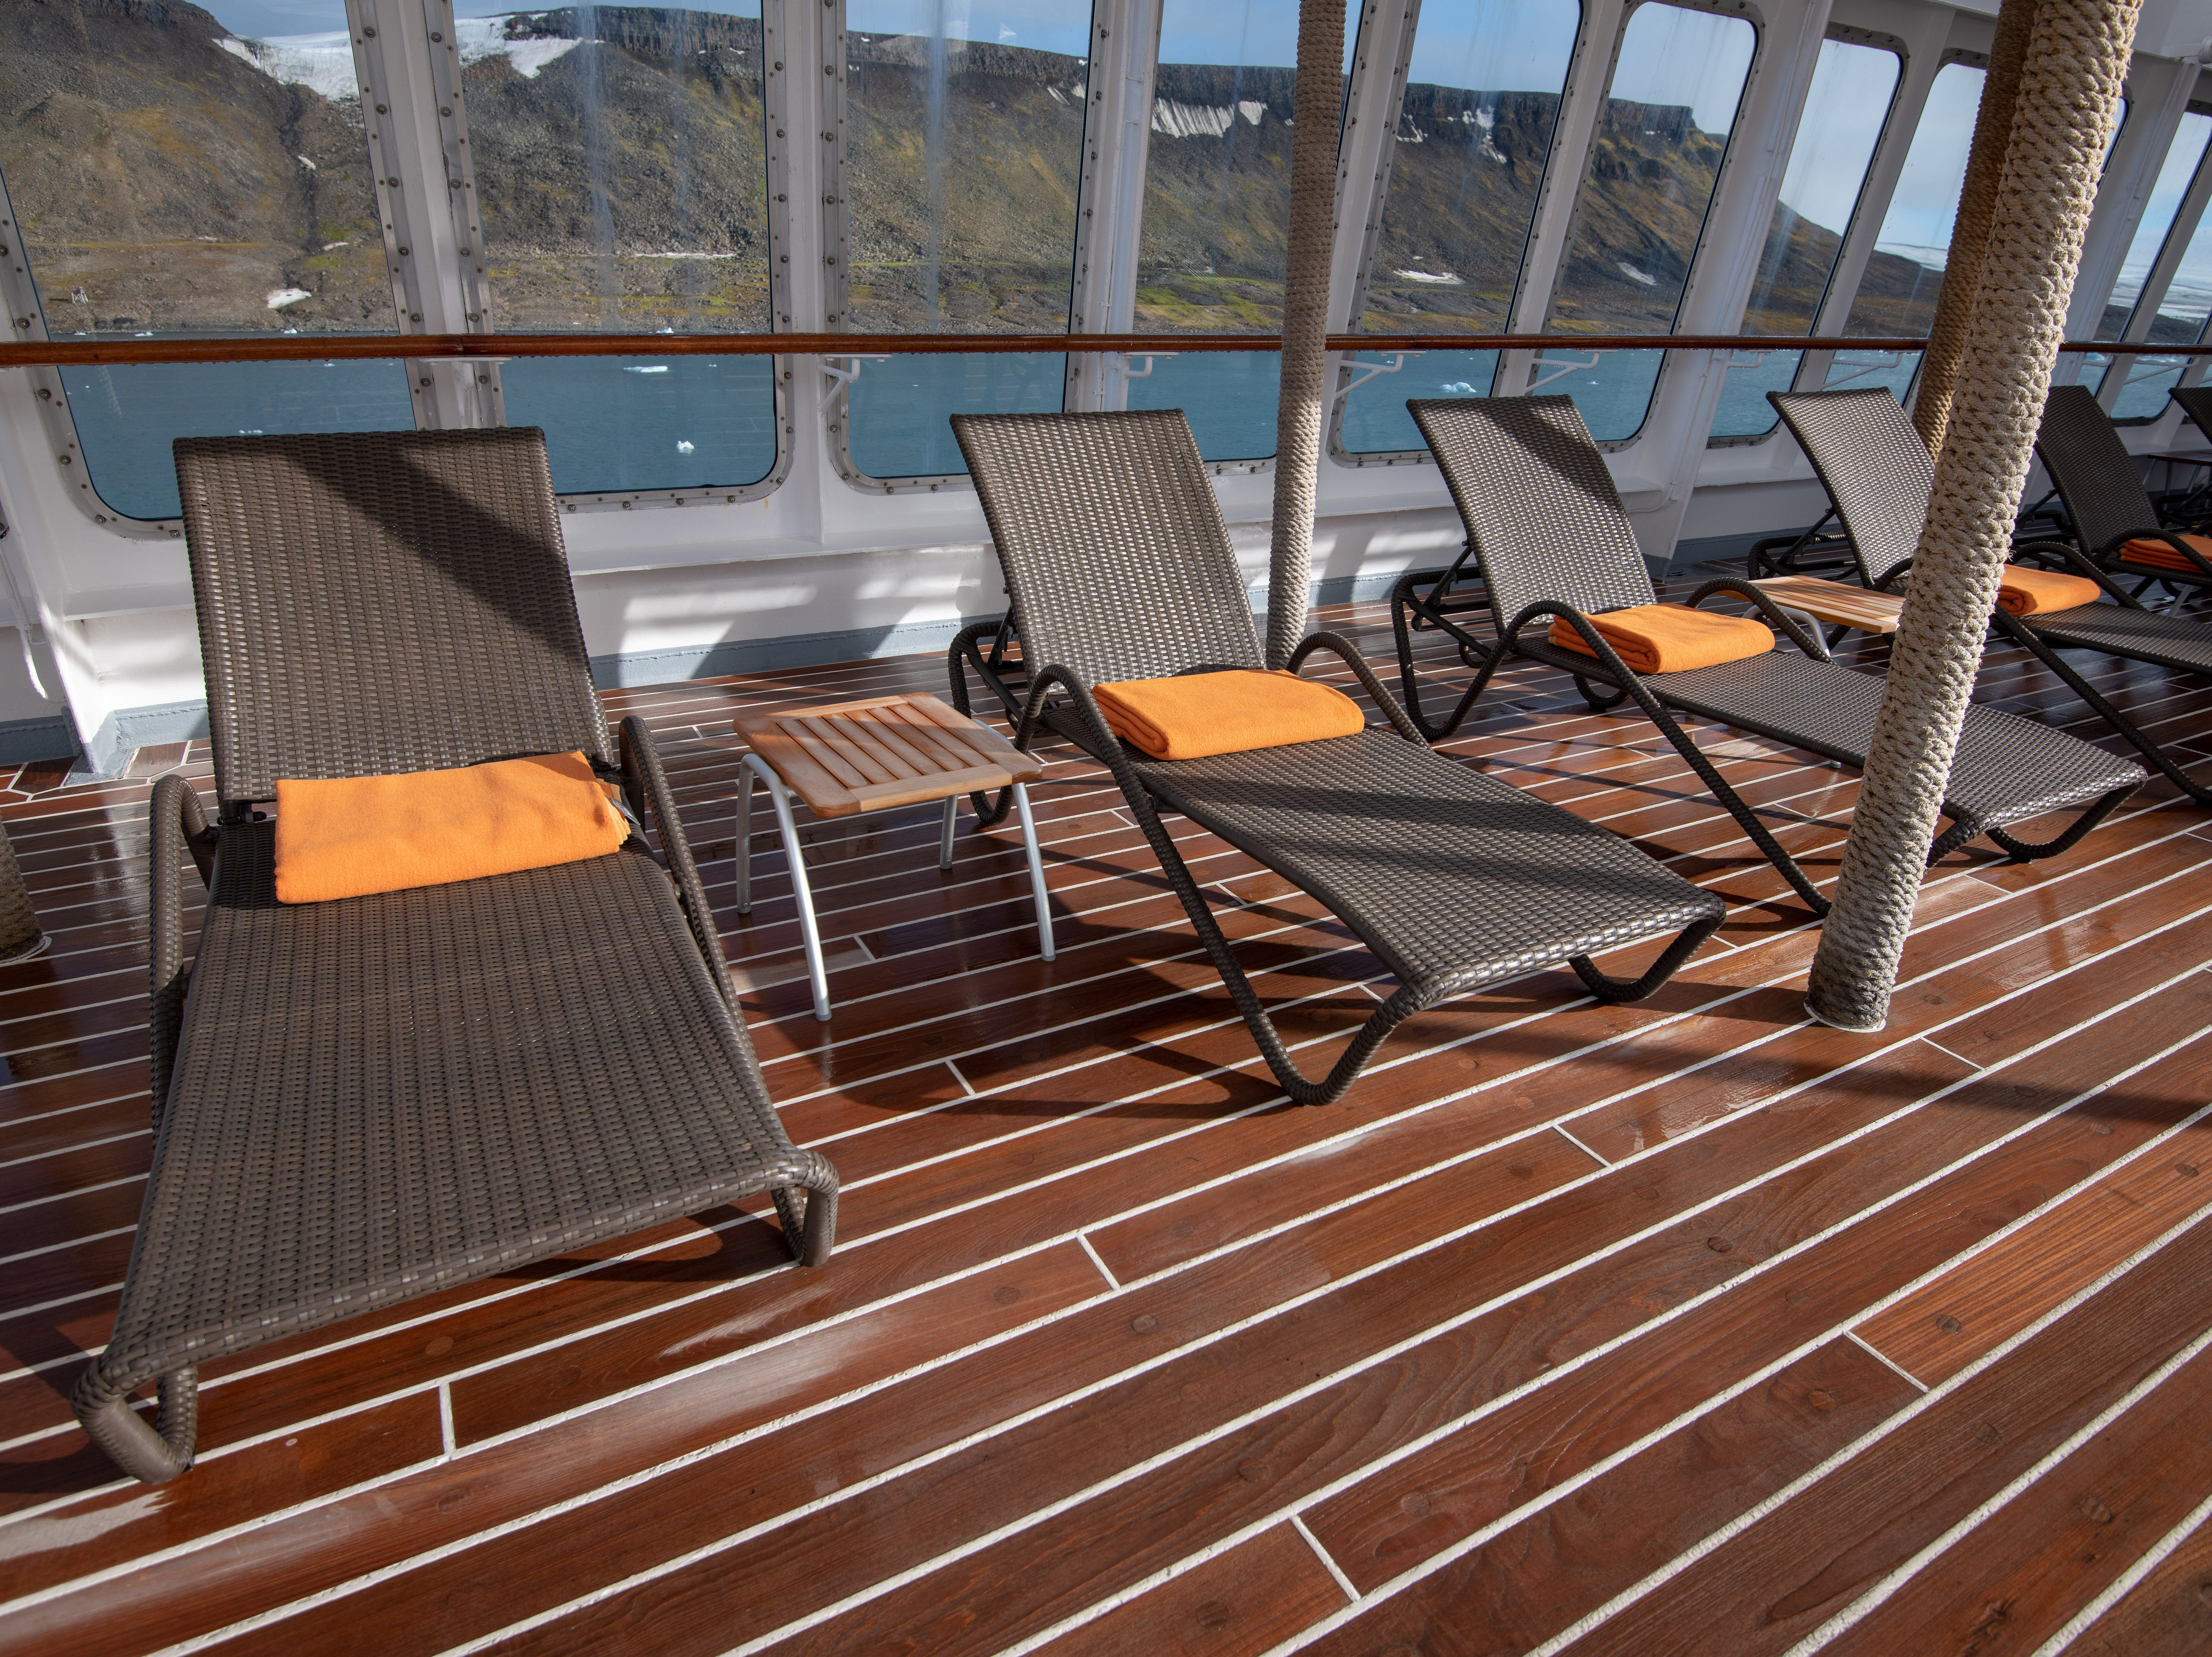 Lounge chairs line the sides of Bremen's Sun Deck, shaded under awnings.